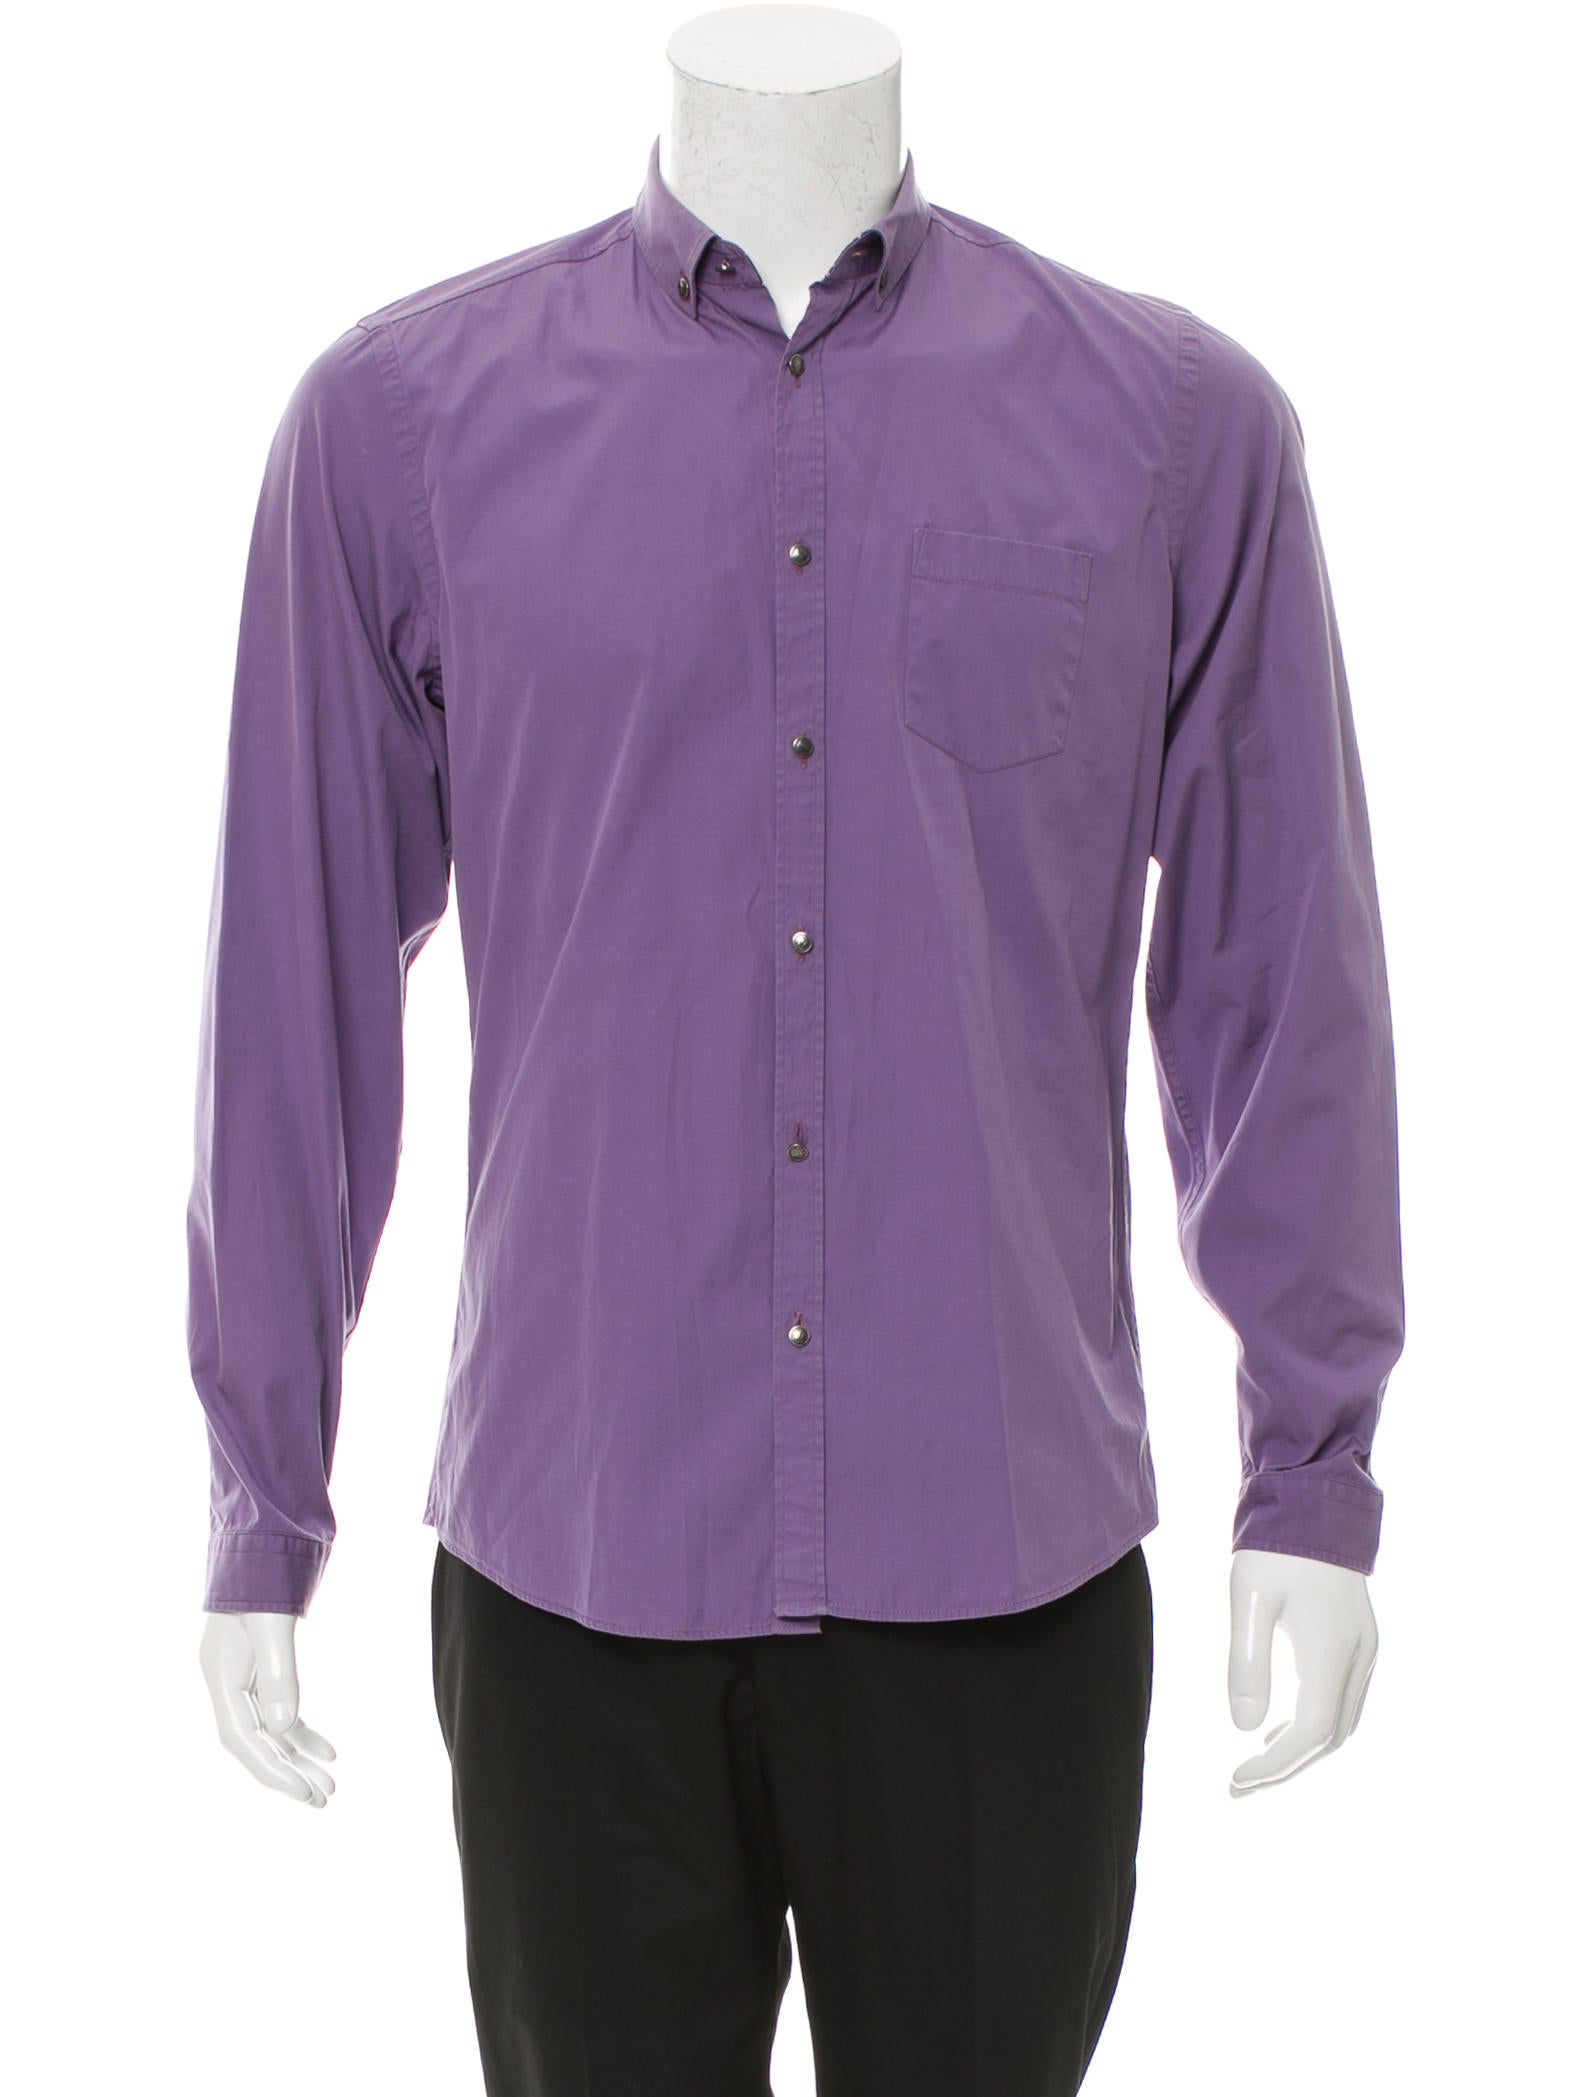 gucci slim fit button up shirt clothing guc133277